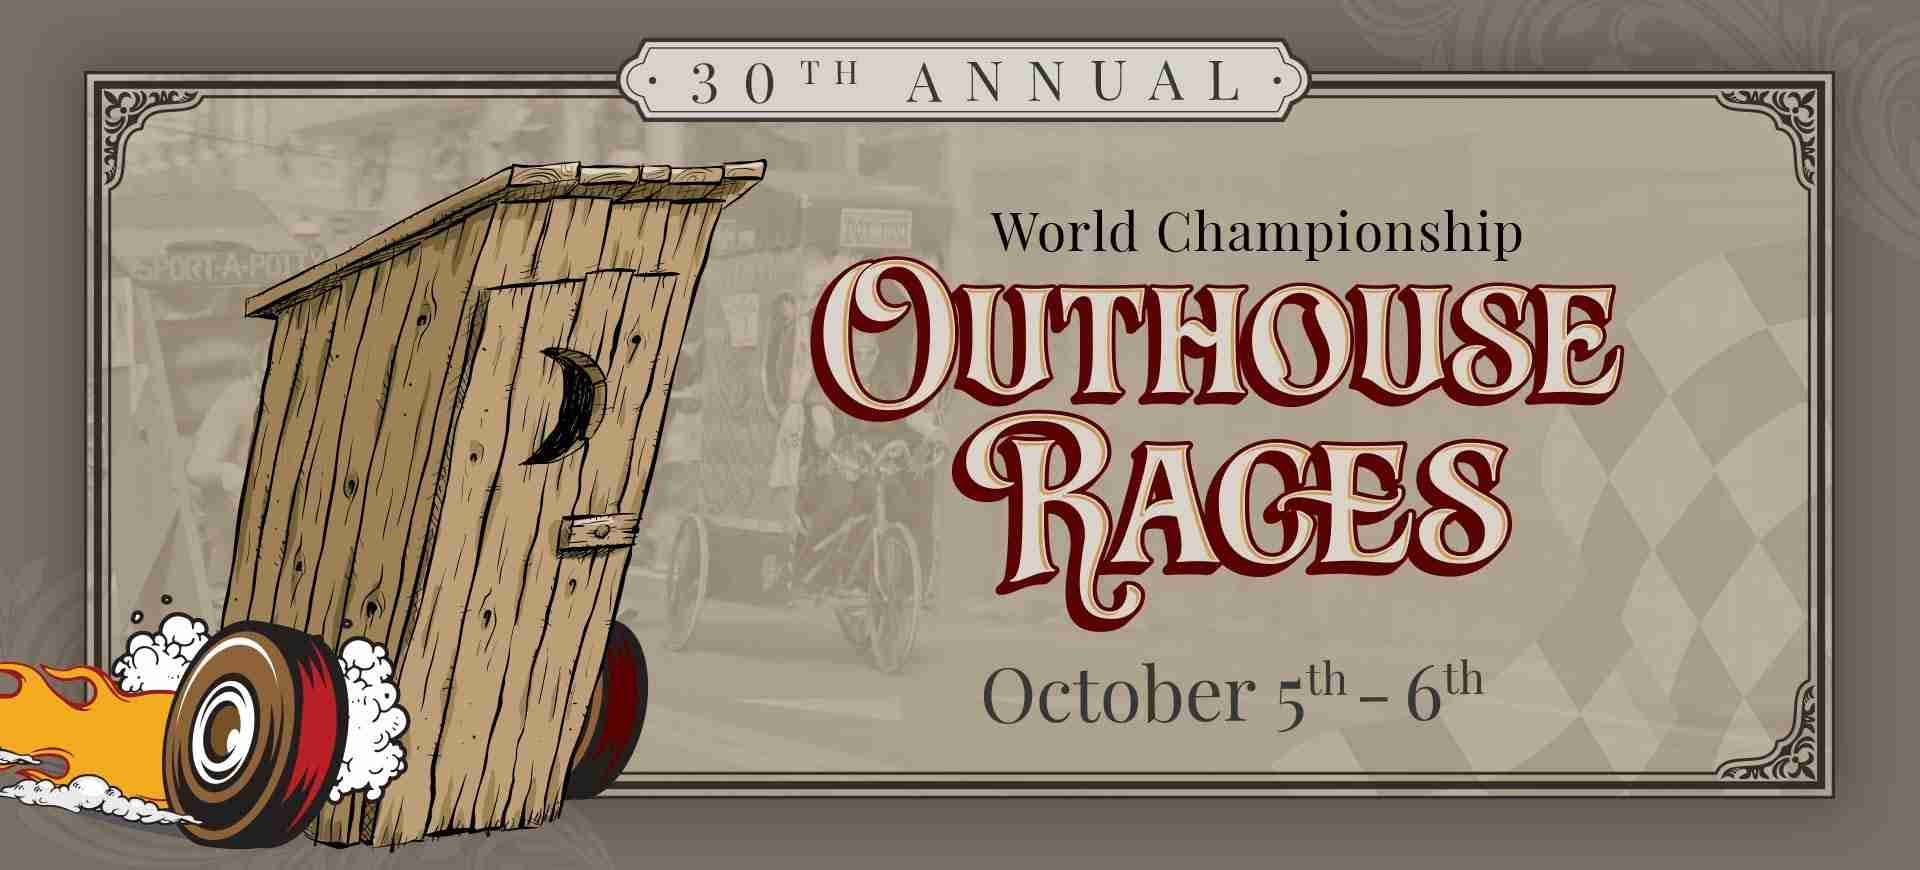 World Championship Outhouse Races